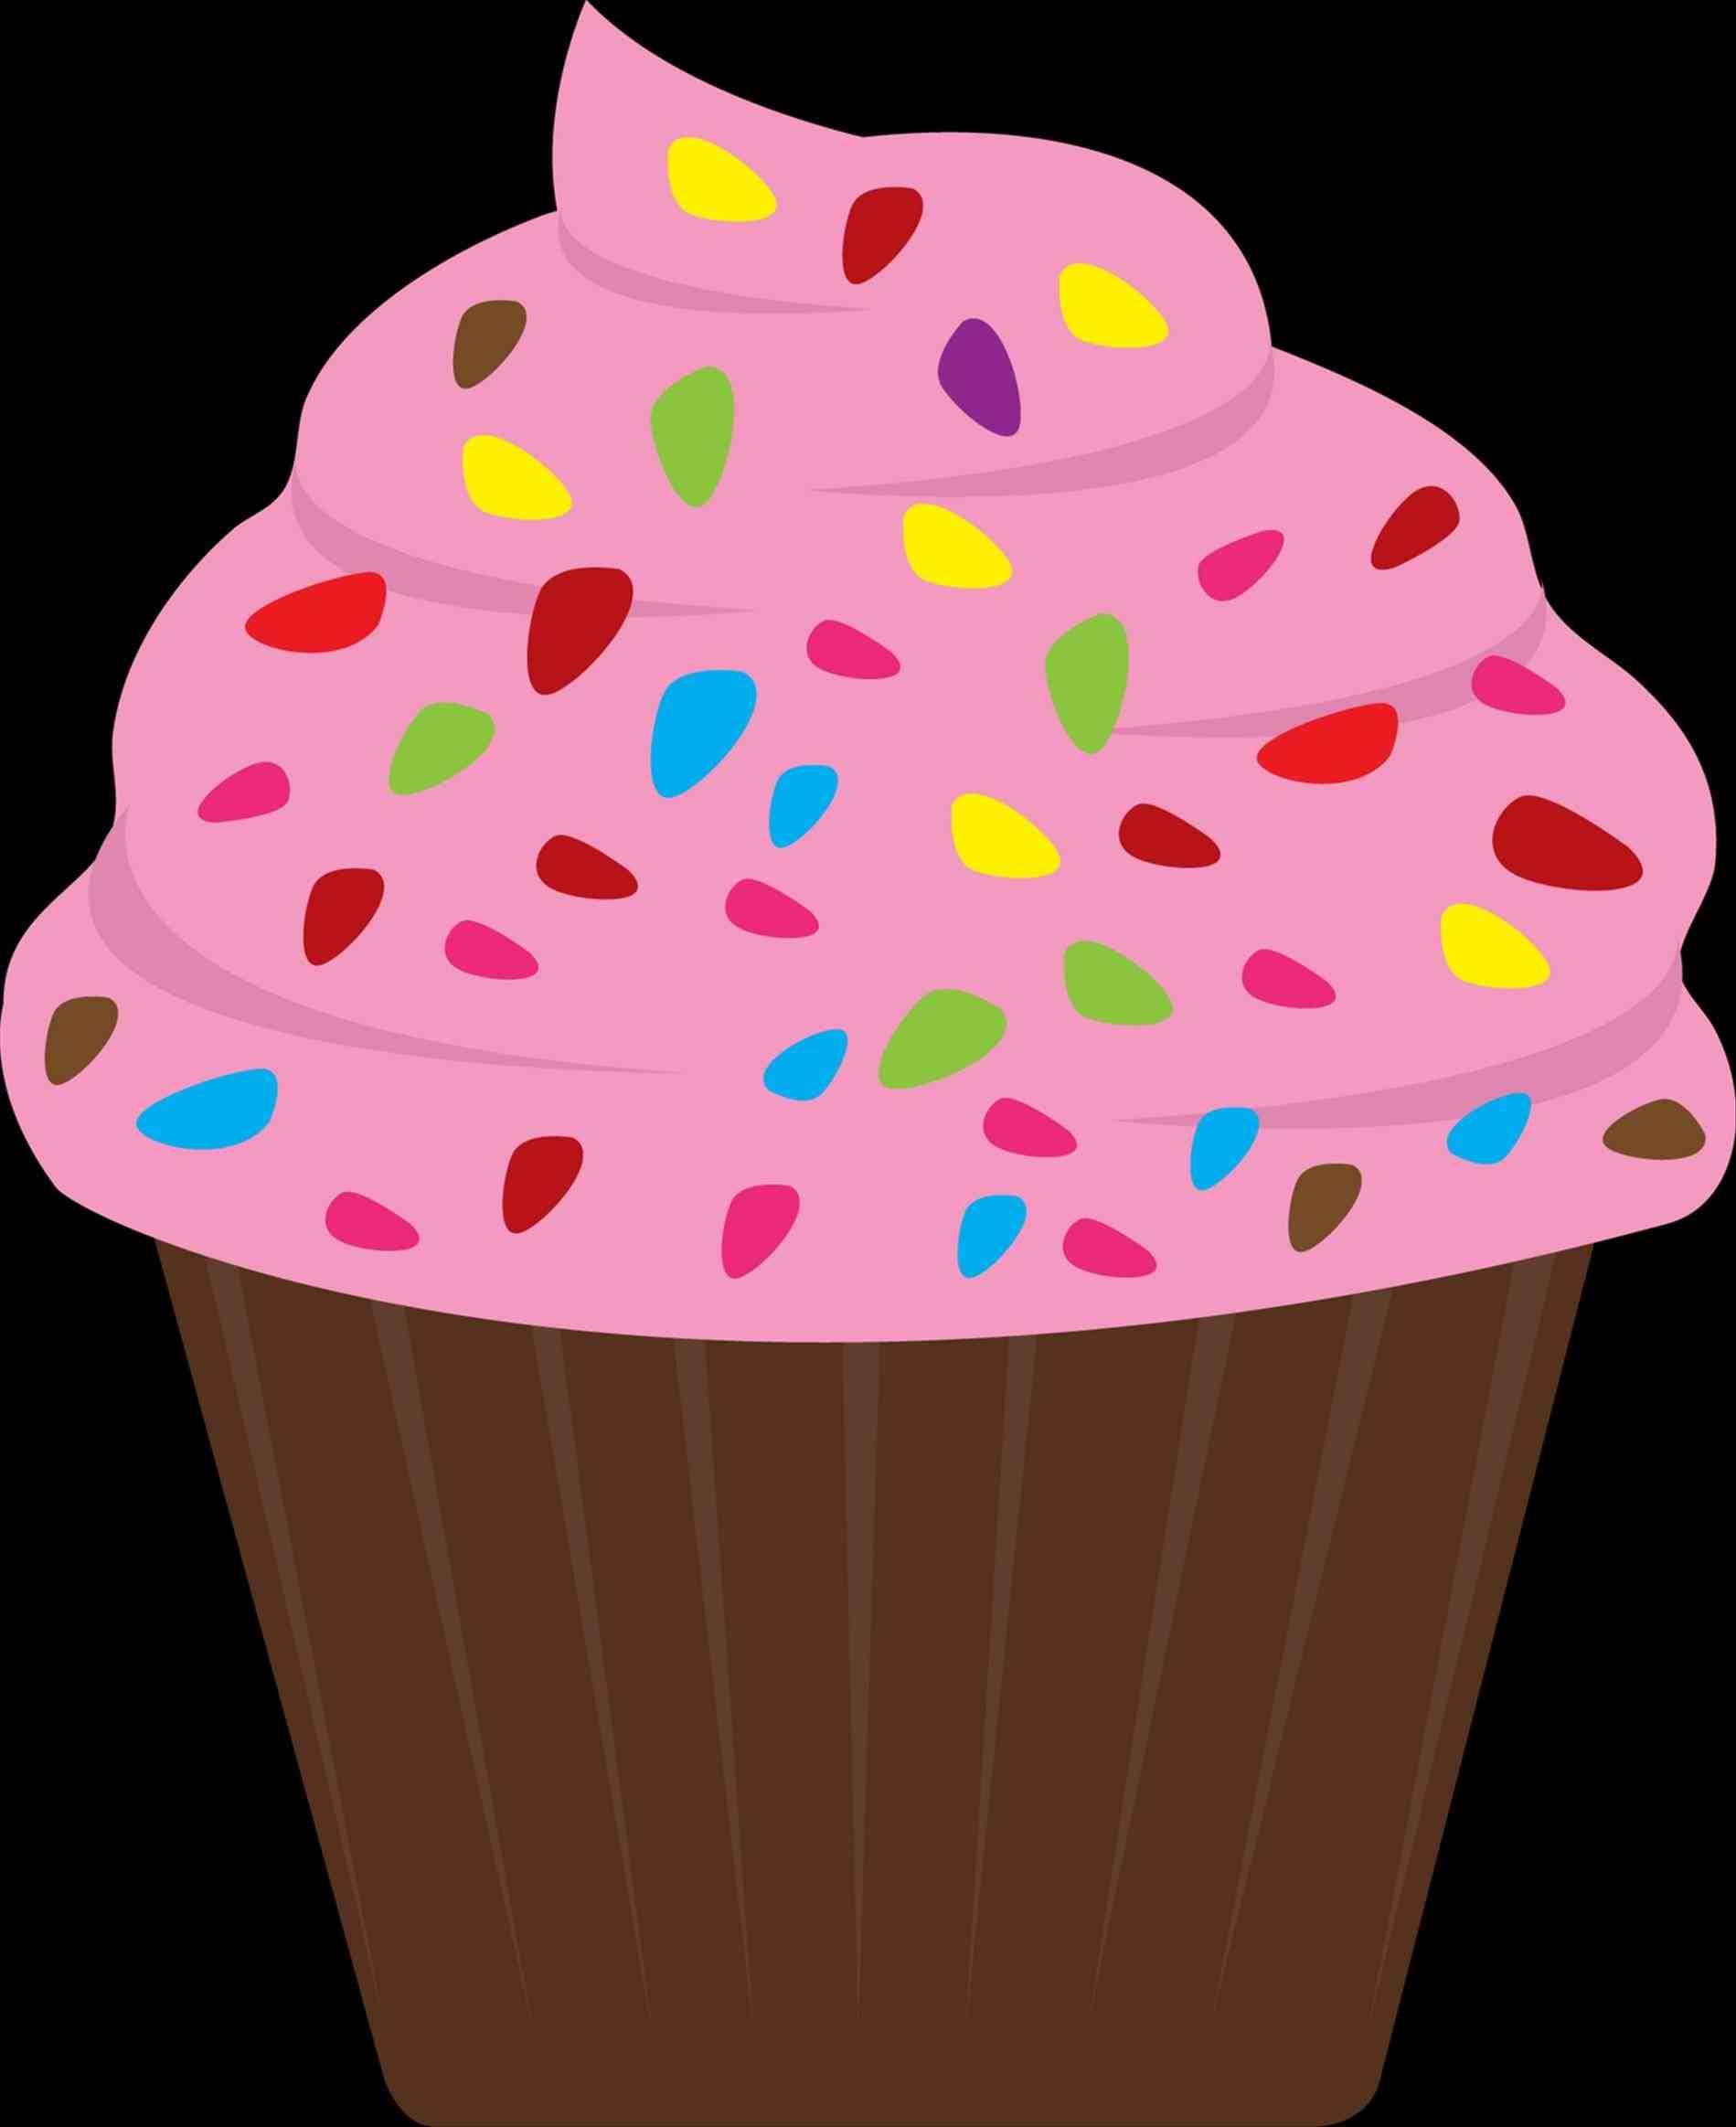 1899x2327 Cupcake Clip Art Vanilla Pencil And In Color Coon Pictures Of S